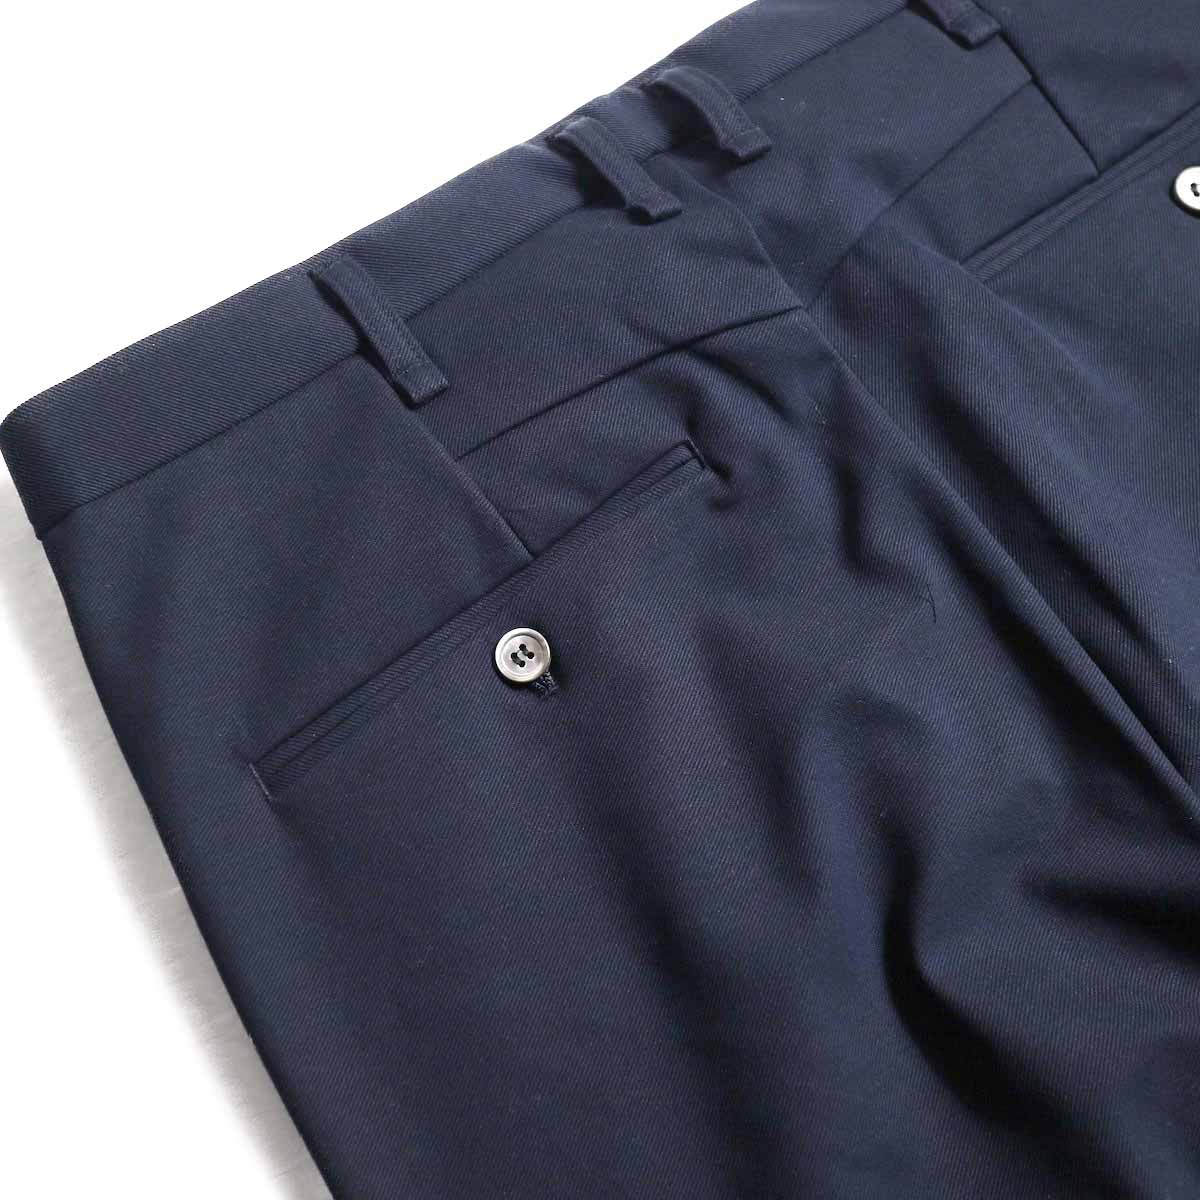 CURLY / Track Trousers -Navy 背面ポケット